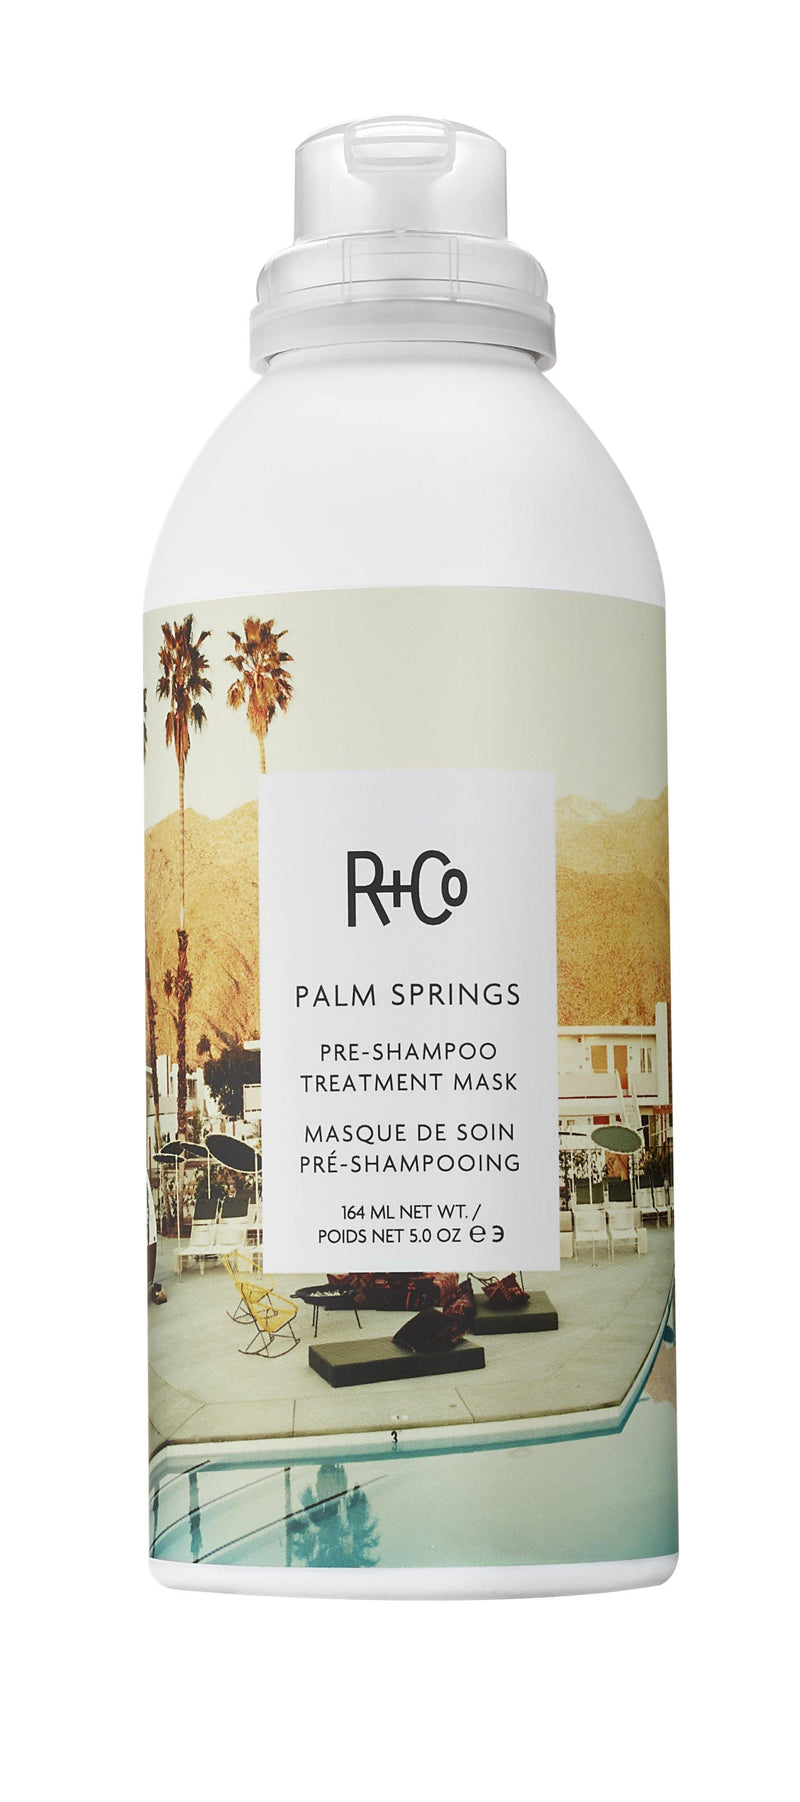 Palm Springs - Pre-Shampoo Treatment Mask - Bristol Hairdressing